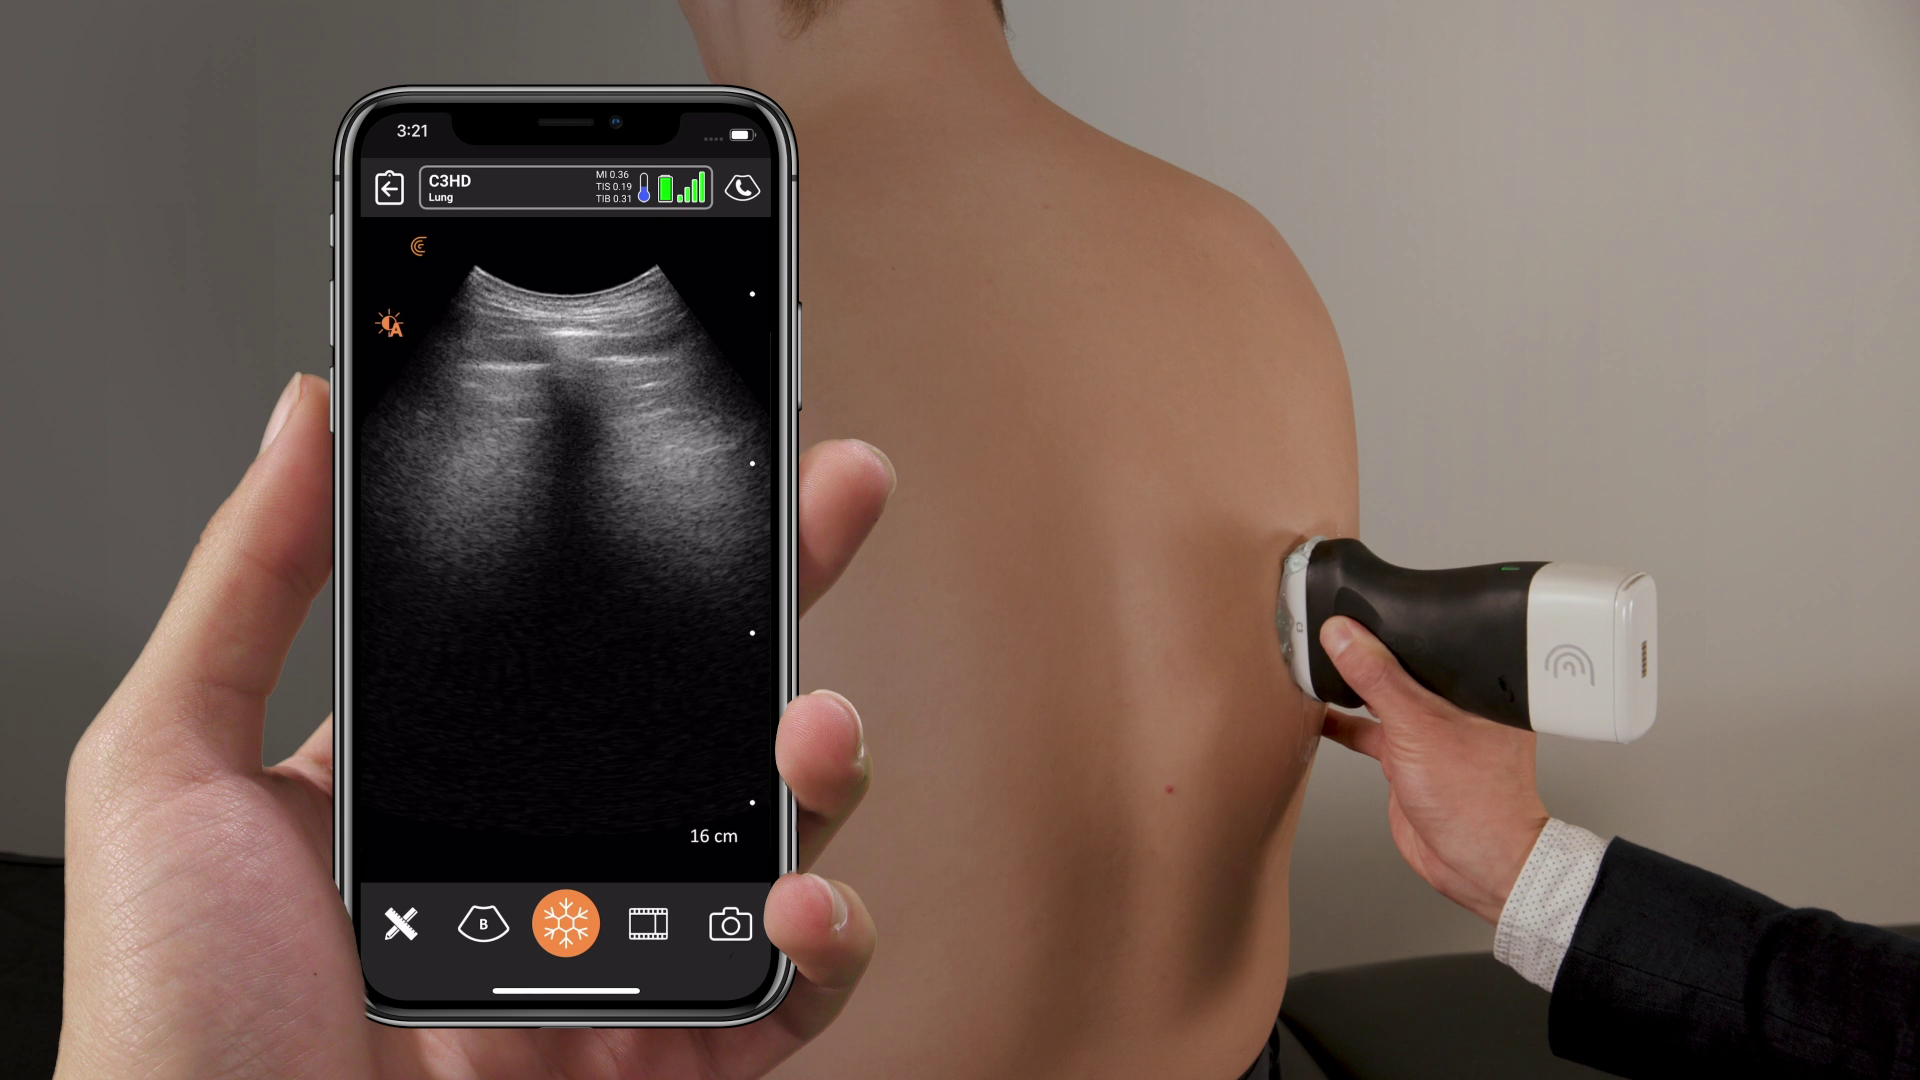 A high-quality image is transmitted from Clarius' wireless handheld ultrasound scanner to a smartphone.